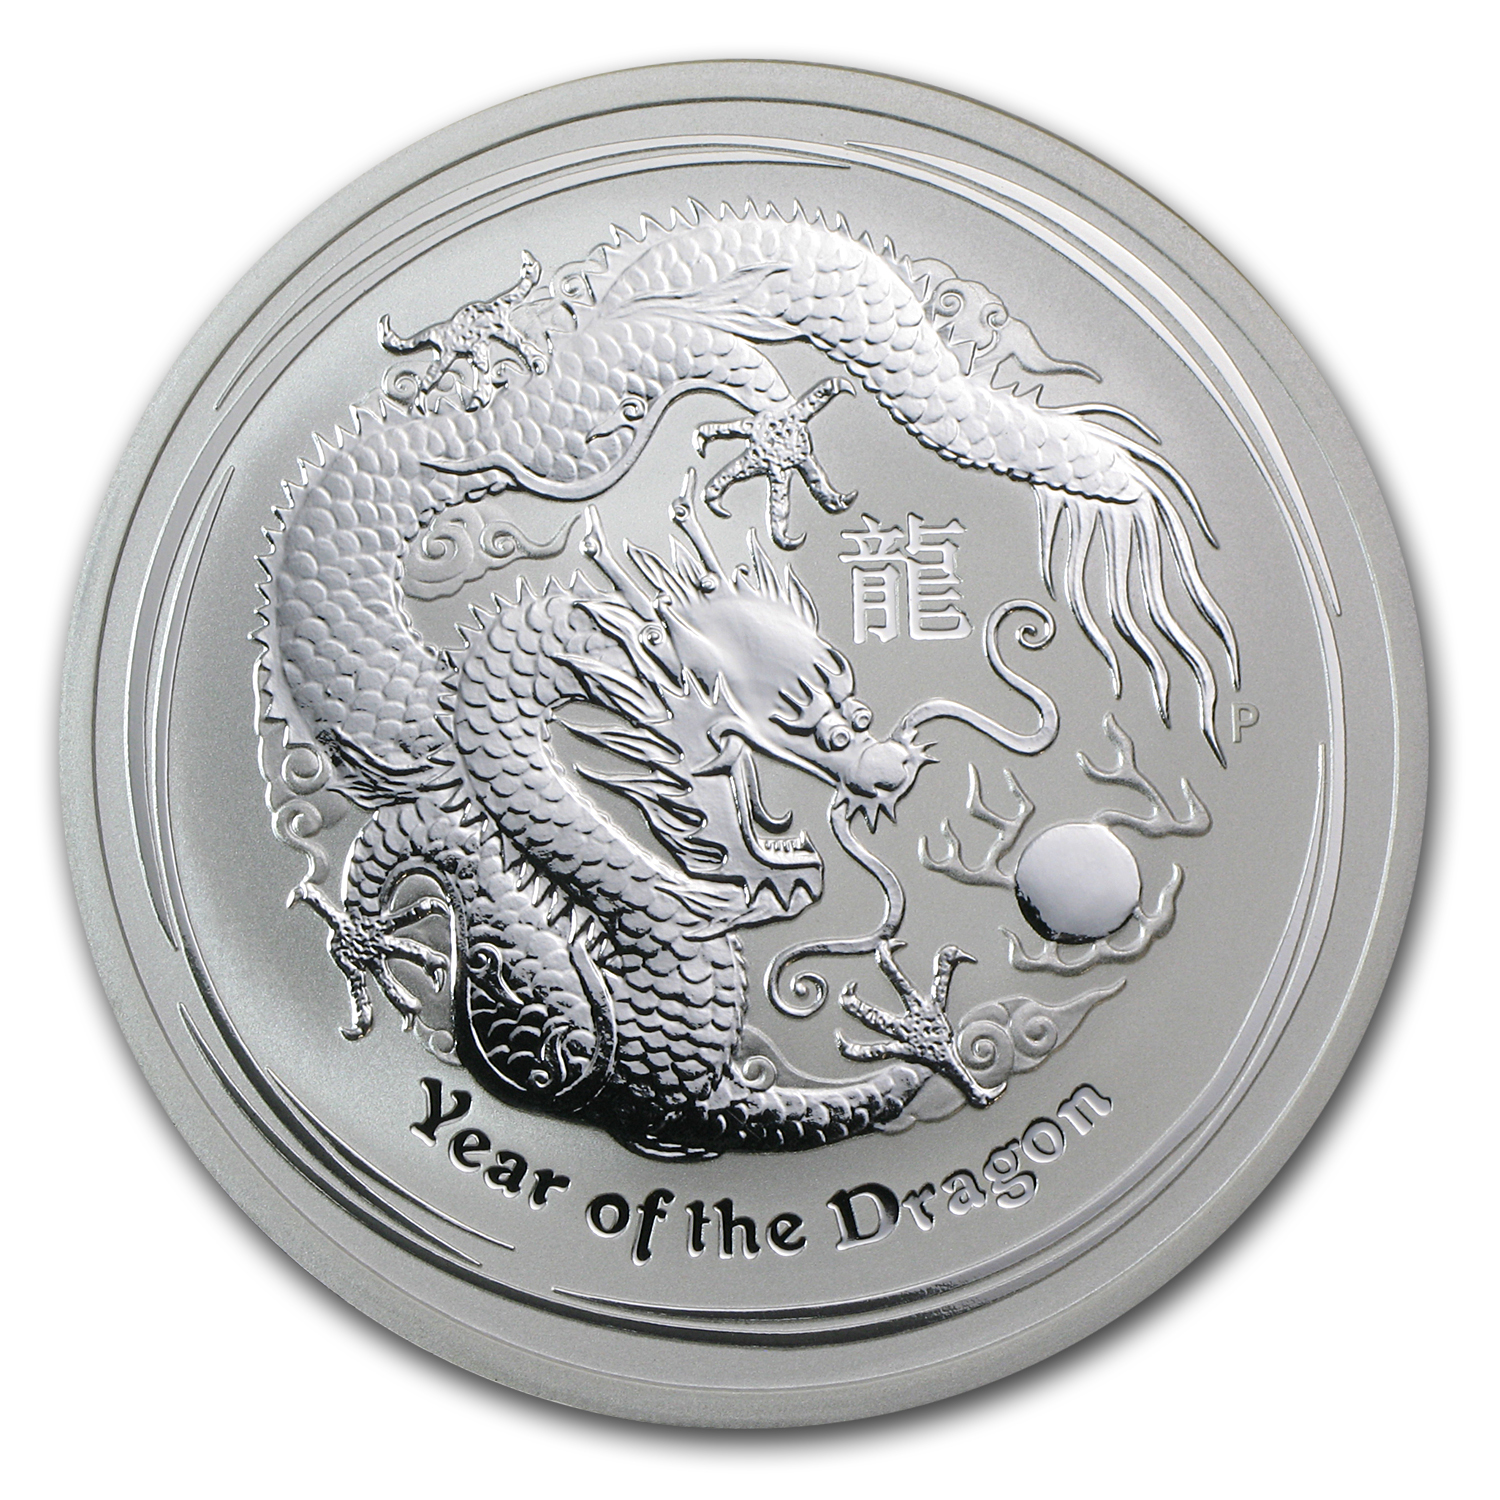 2012 2 oz Silver Australian Lunar Year of the Dragon Coin